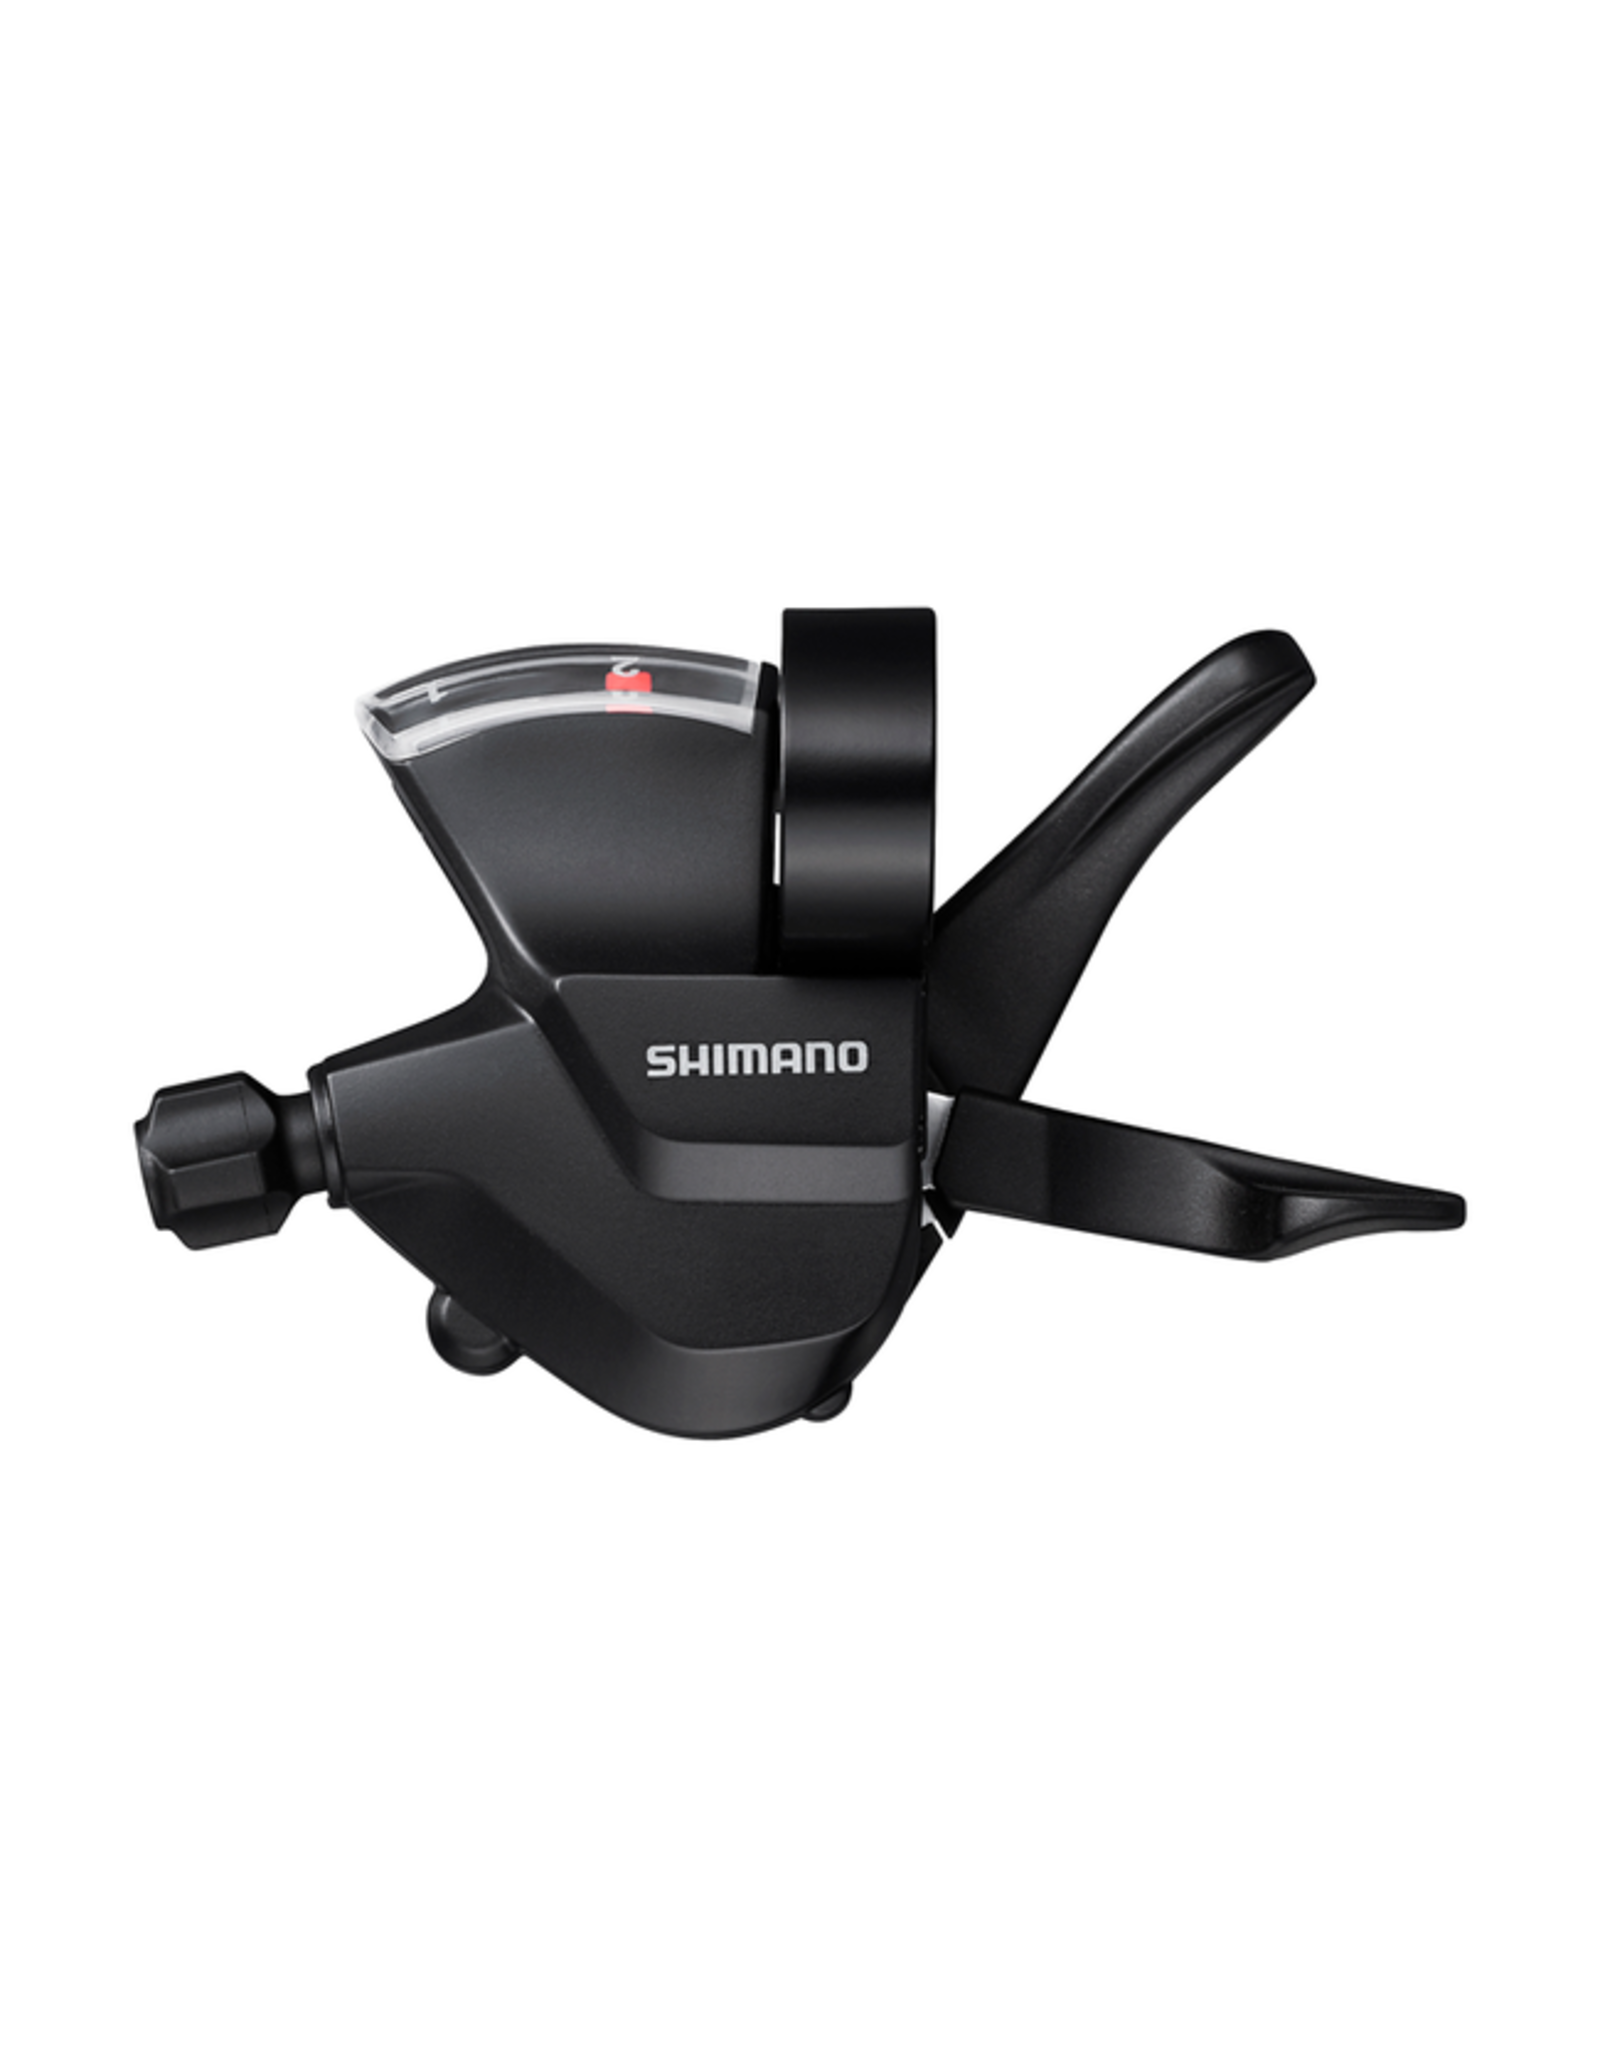 SHIMANO Shift Lever SL-M315 Shimano Left 3-Speed Left